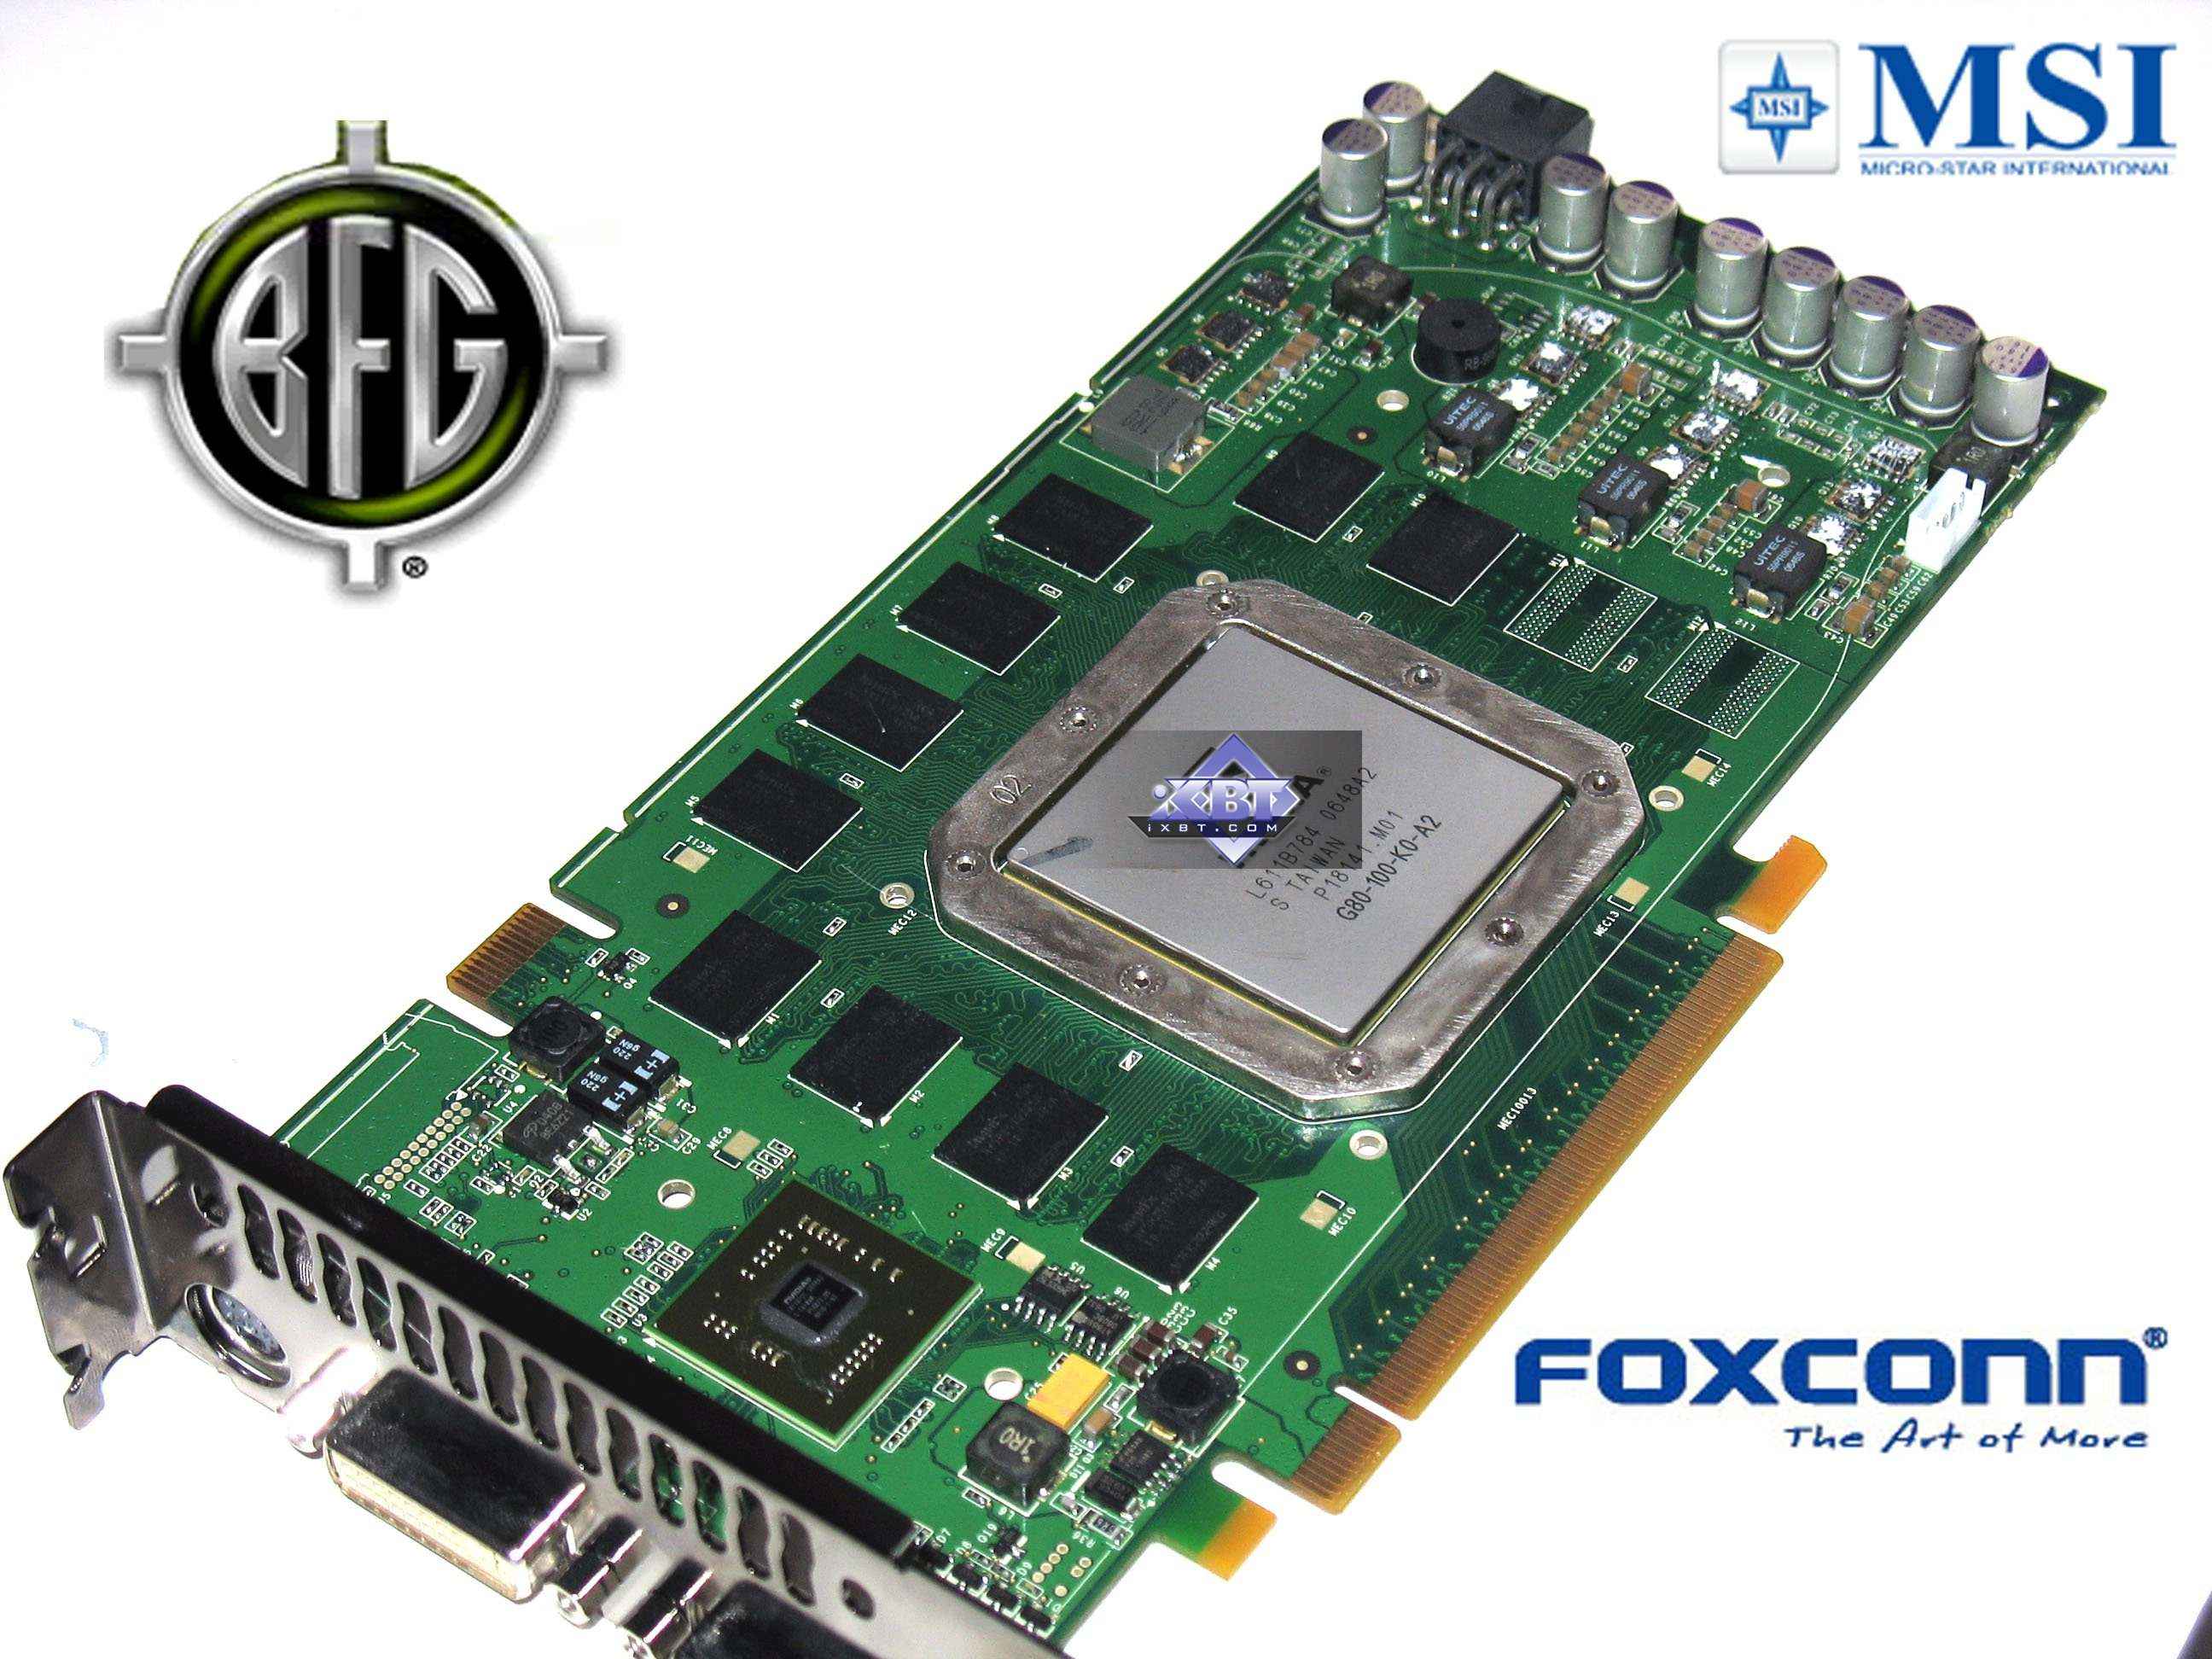 NVIDIA GeForce 8800 GTS 320MB From BFG MSI And Foxconn